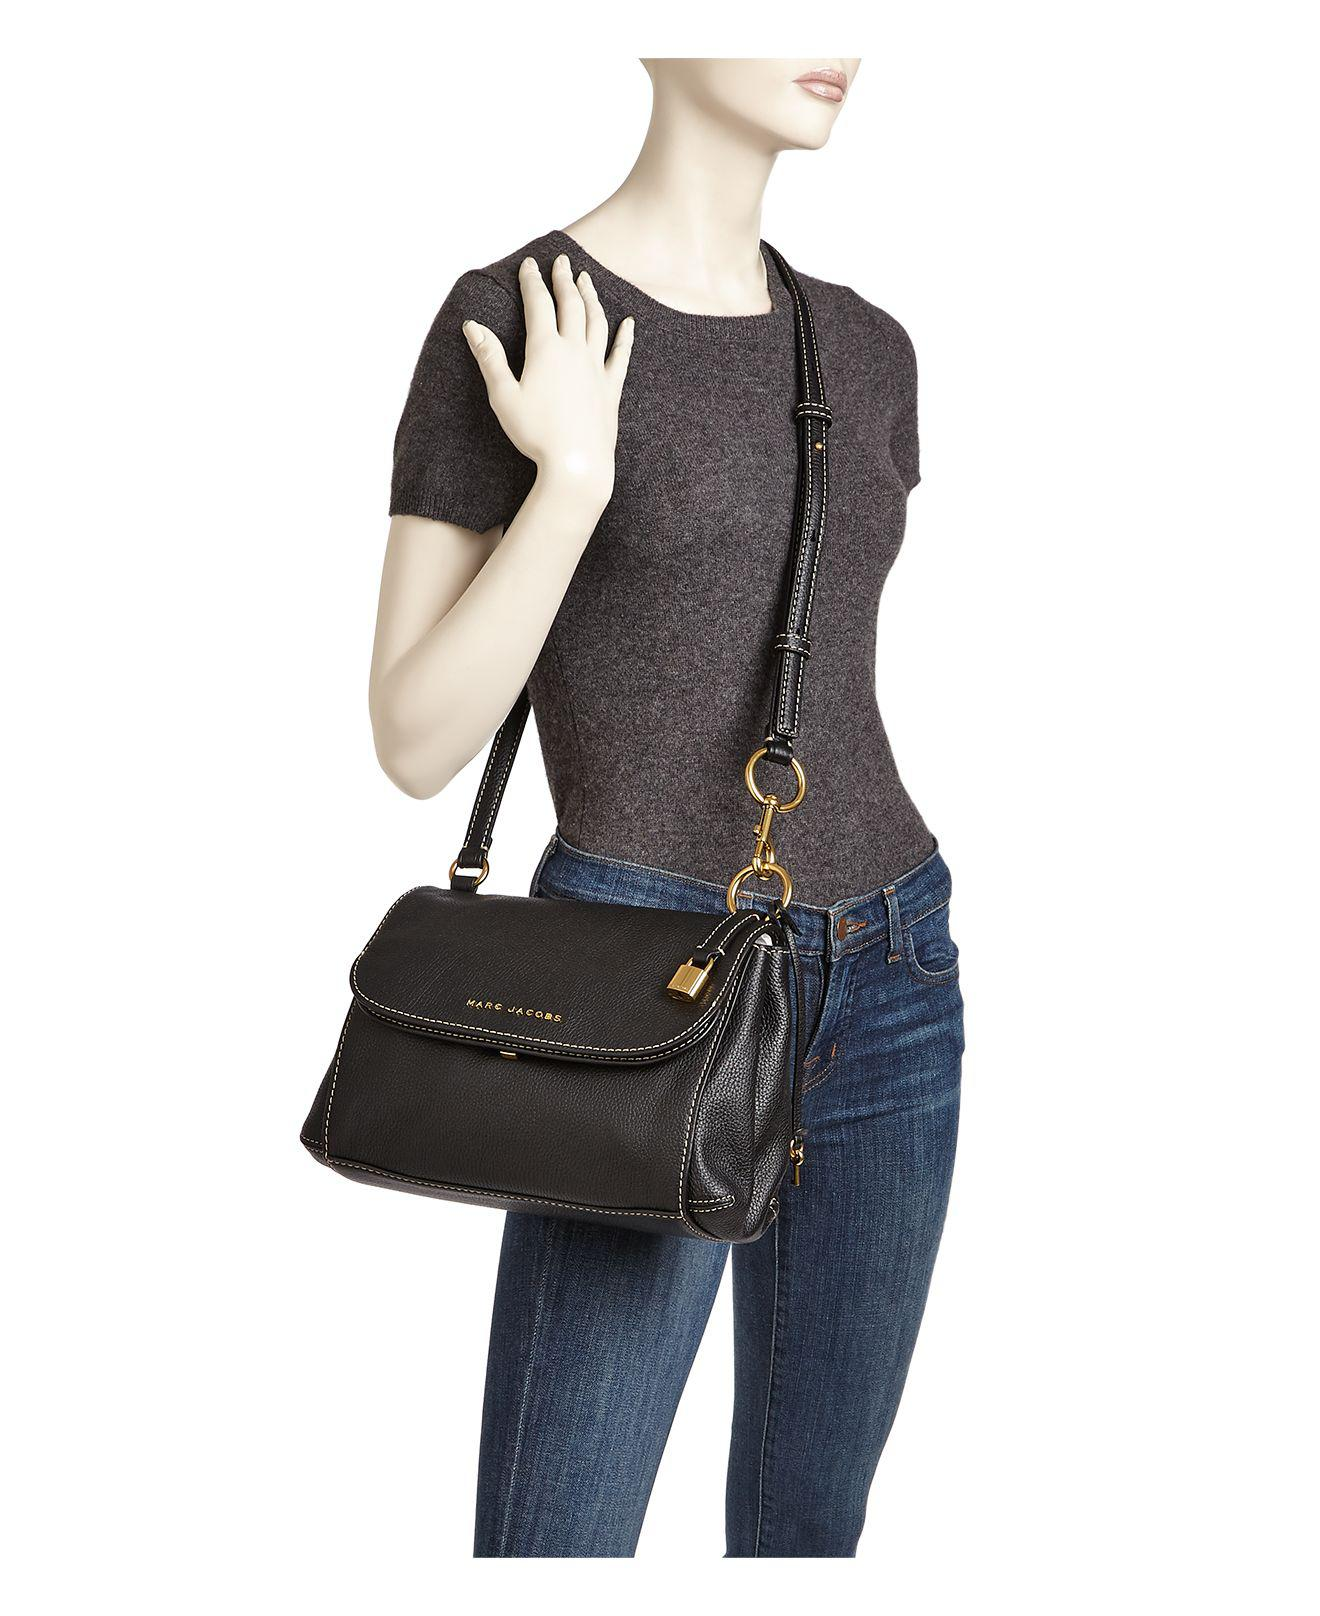 Marc Jacobs The Boho Grind Leather Crossbody in Blue - Lyst 4f5214737211c